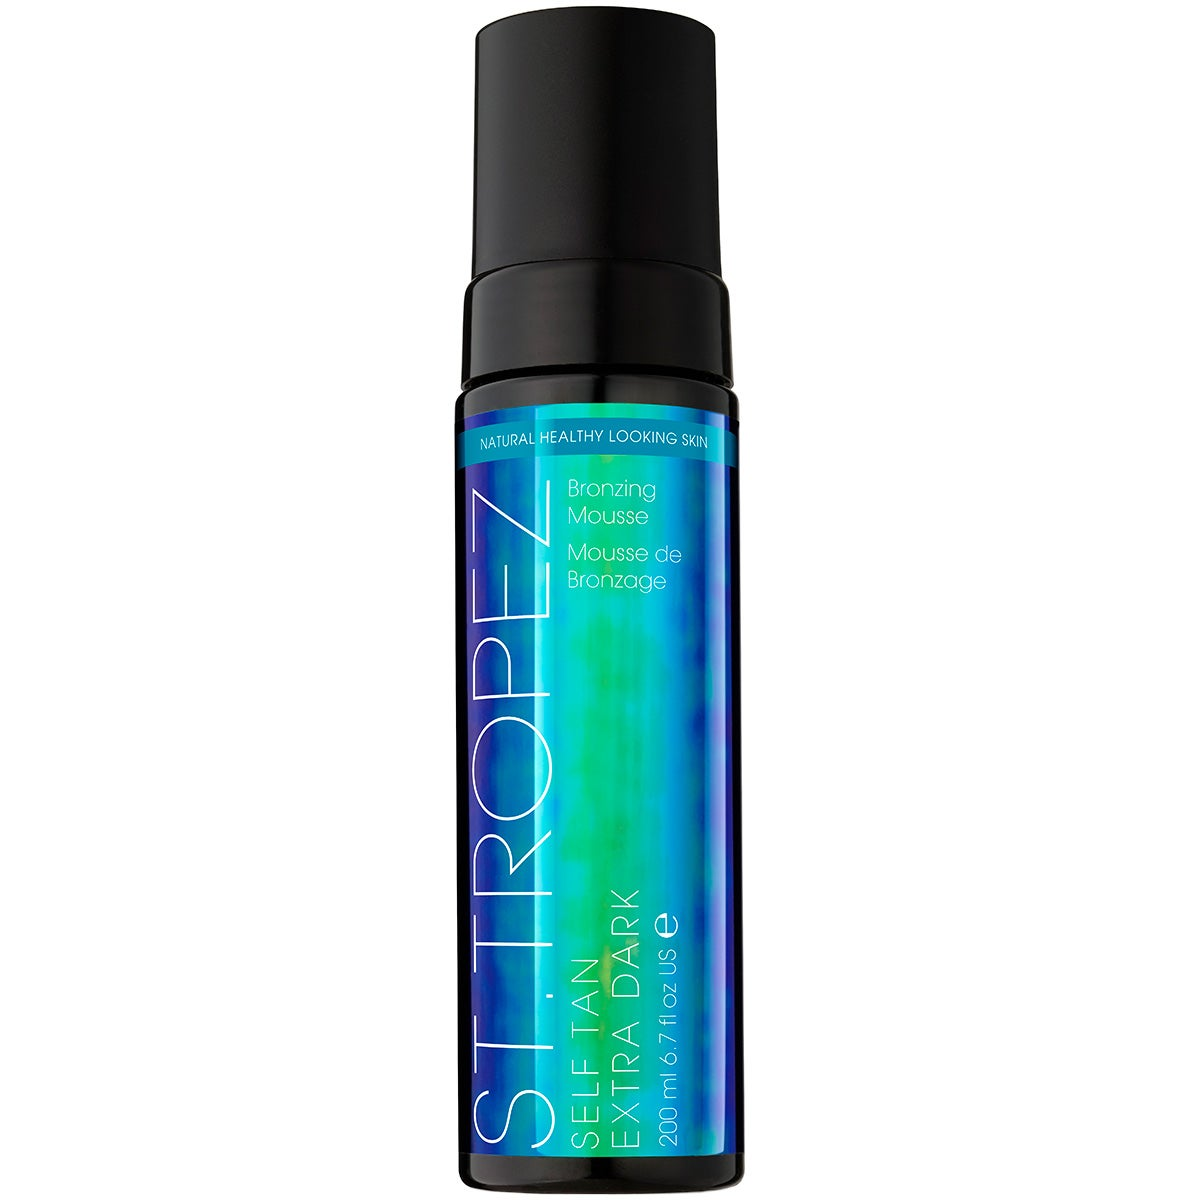 St. Tropez Self Tan Bronzing Mousse Extra Dark